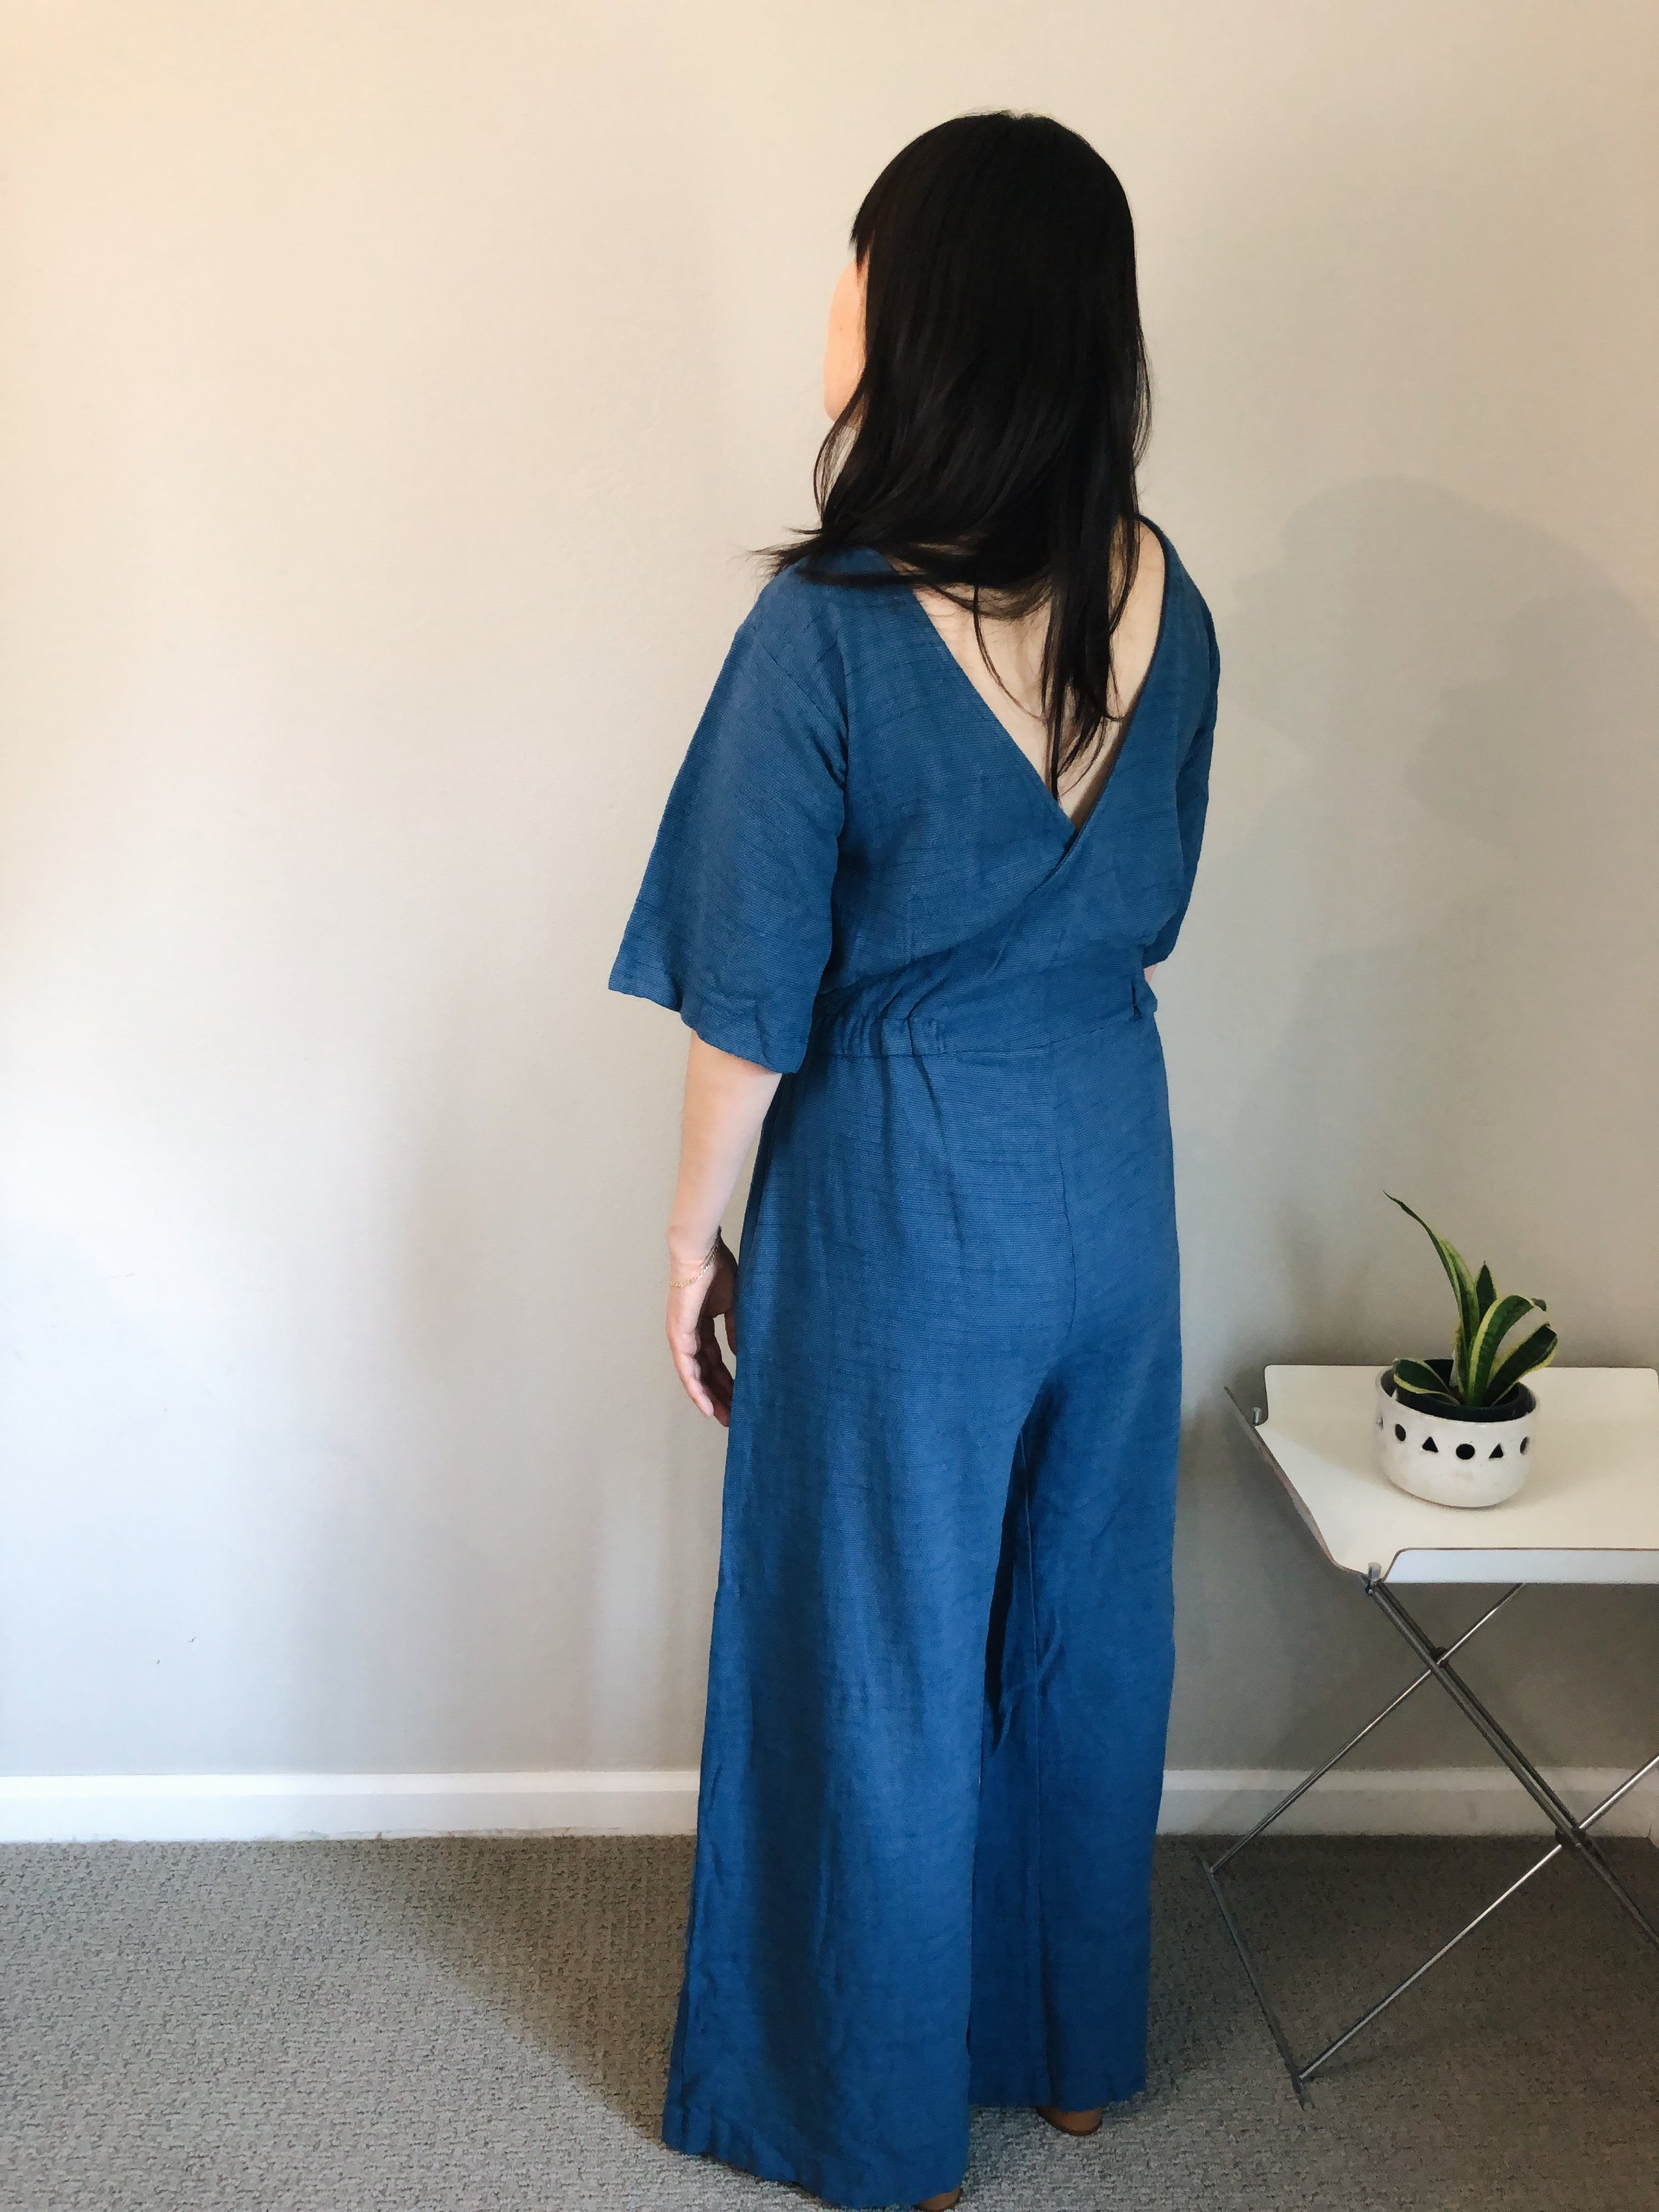 esby review duffy jumper